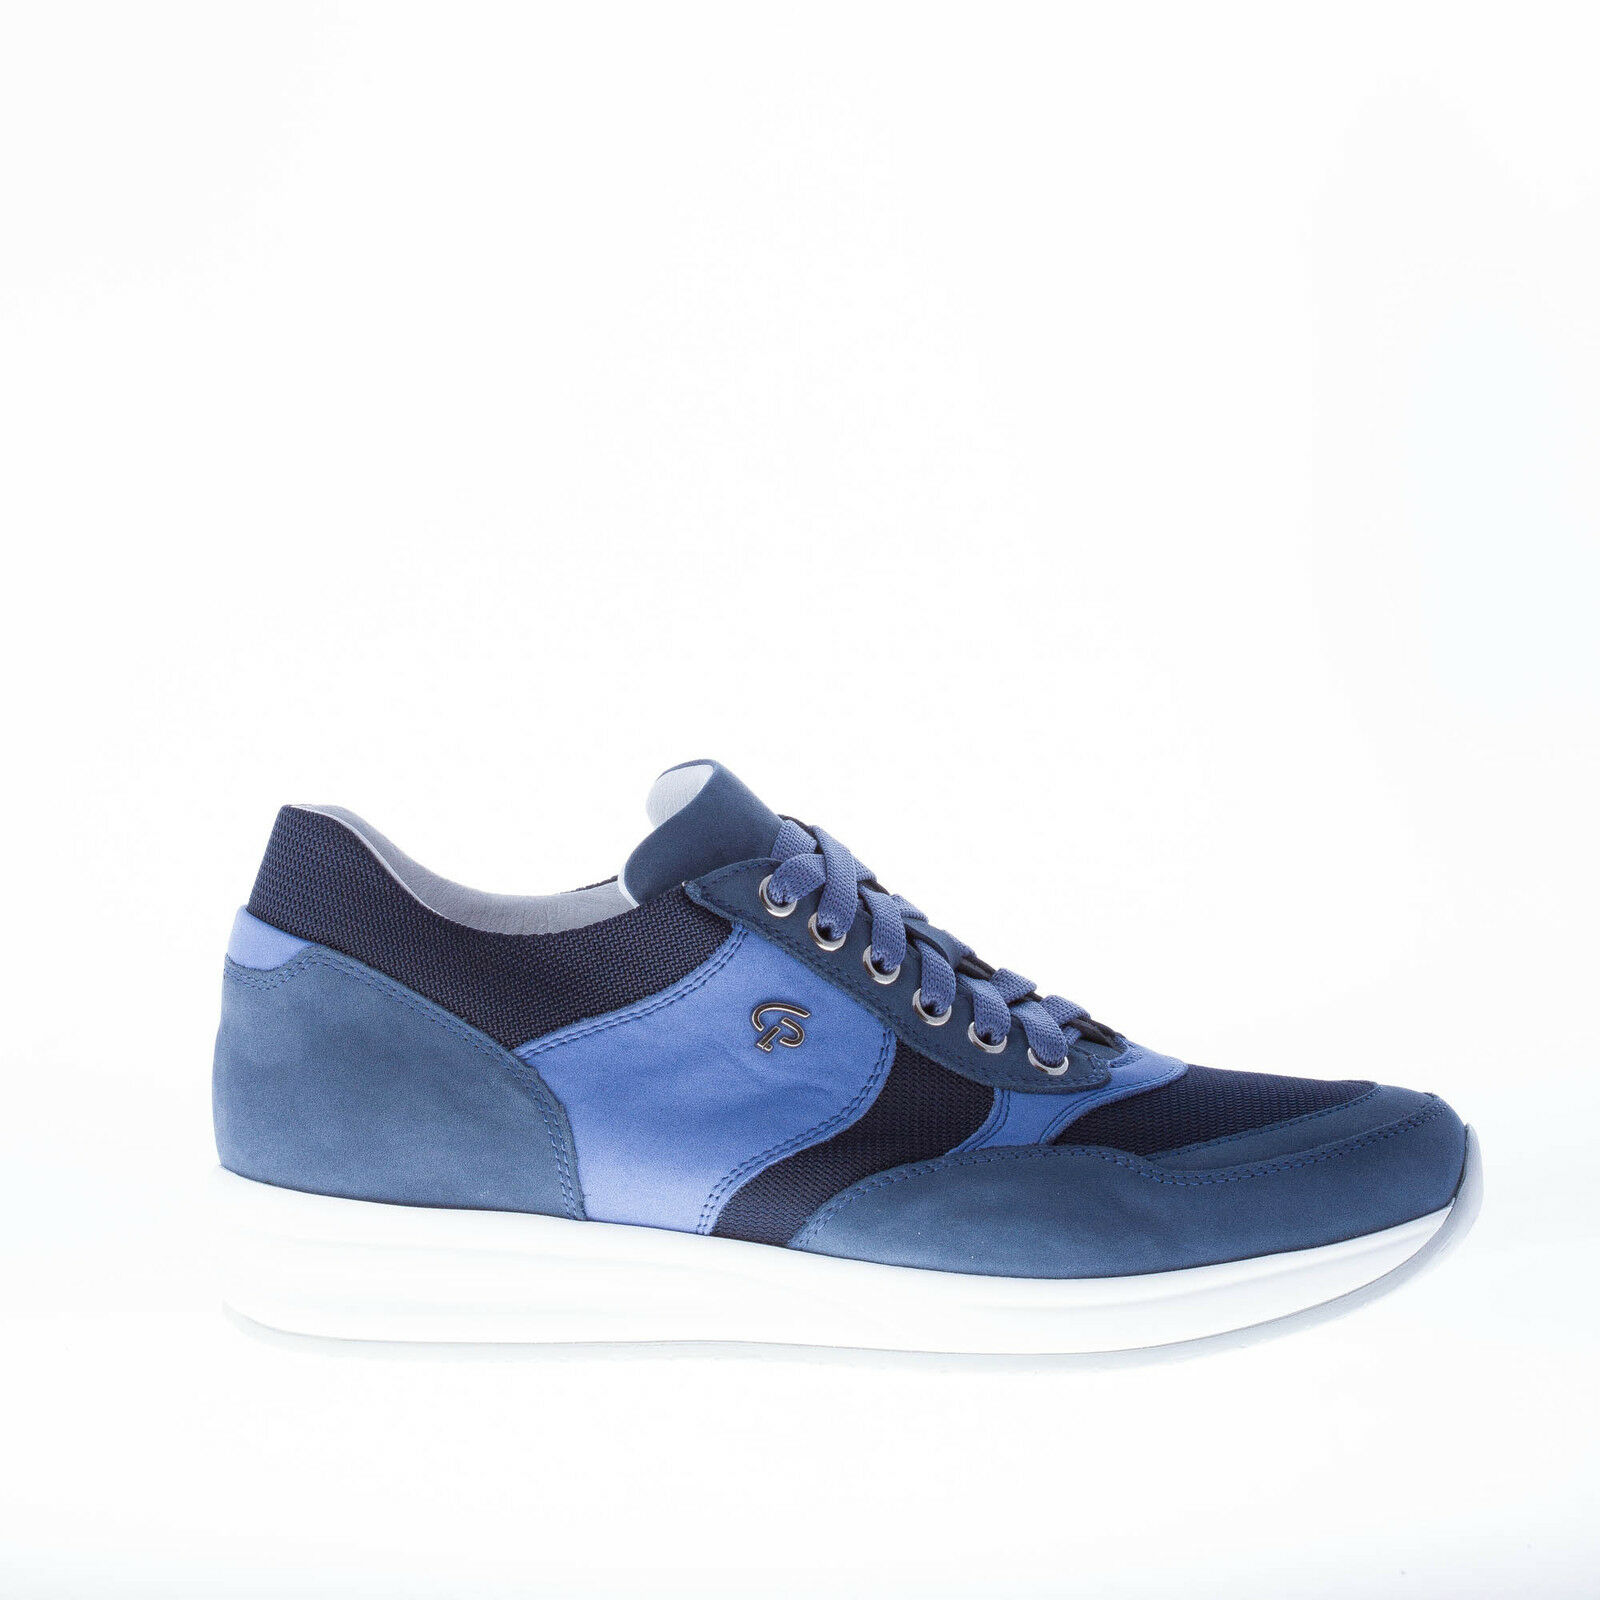 CESARE P. shoes homme bluee denim and grey nubuk and fabric sneaker